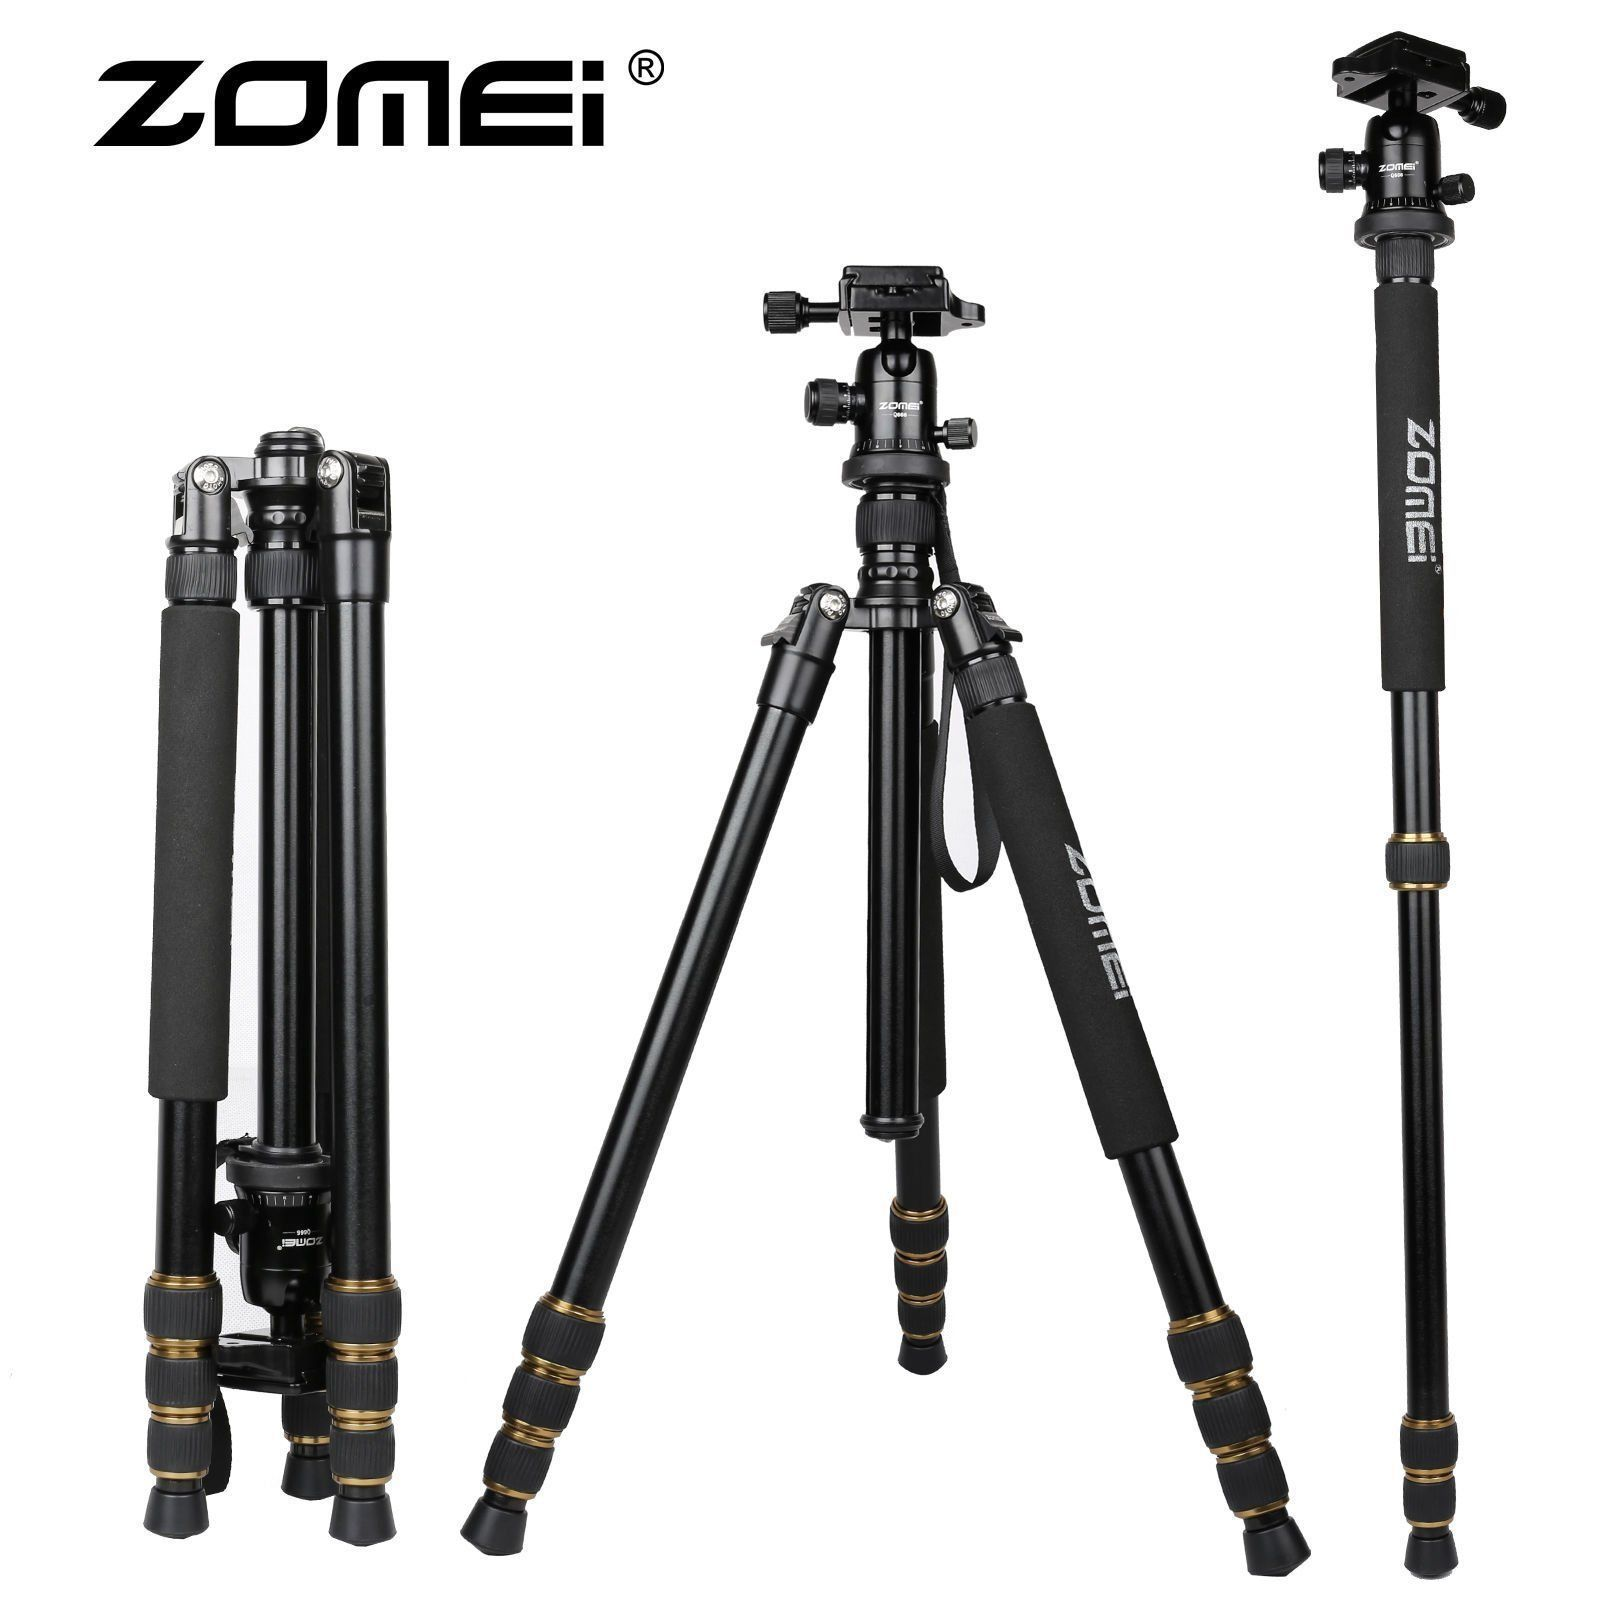 ZOMEI Q666 Portable Camera Aluminium Tripod Monopod with Ball Head for DSLR zomei z888 portable stable magnesium alloy digital camera tripod monopod ball head for digital slr dslr camera